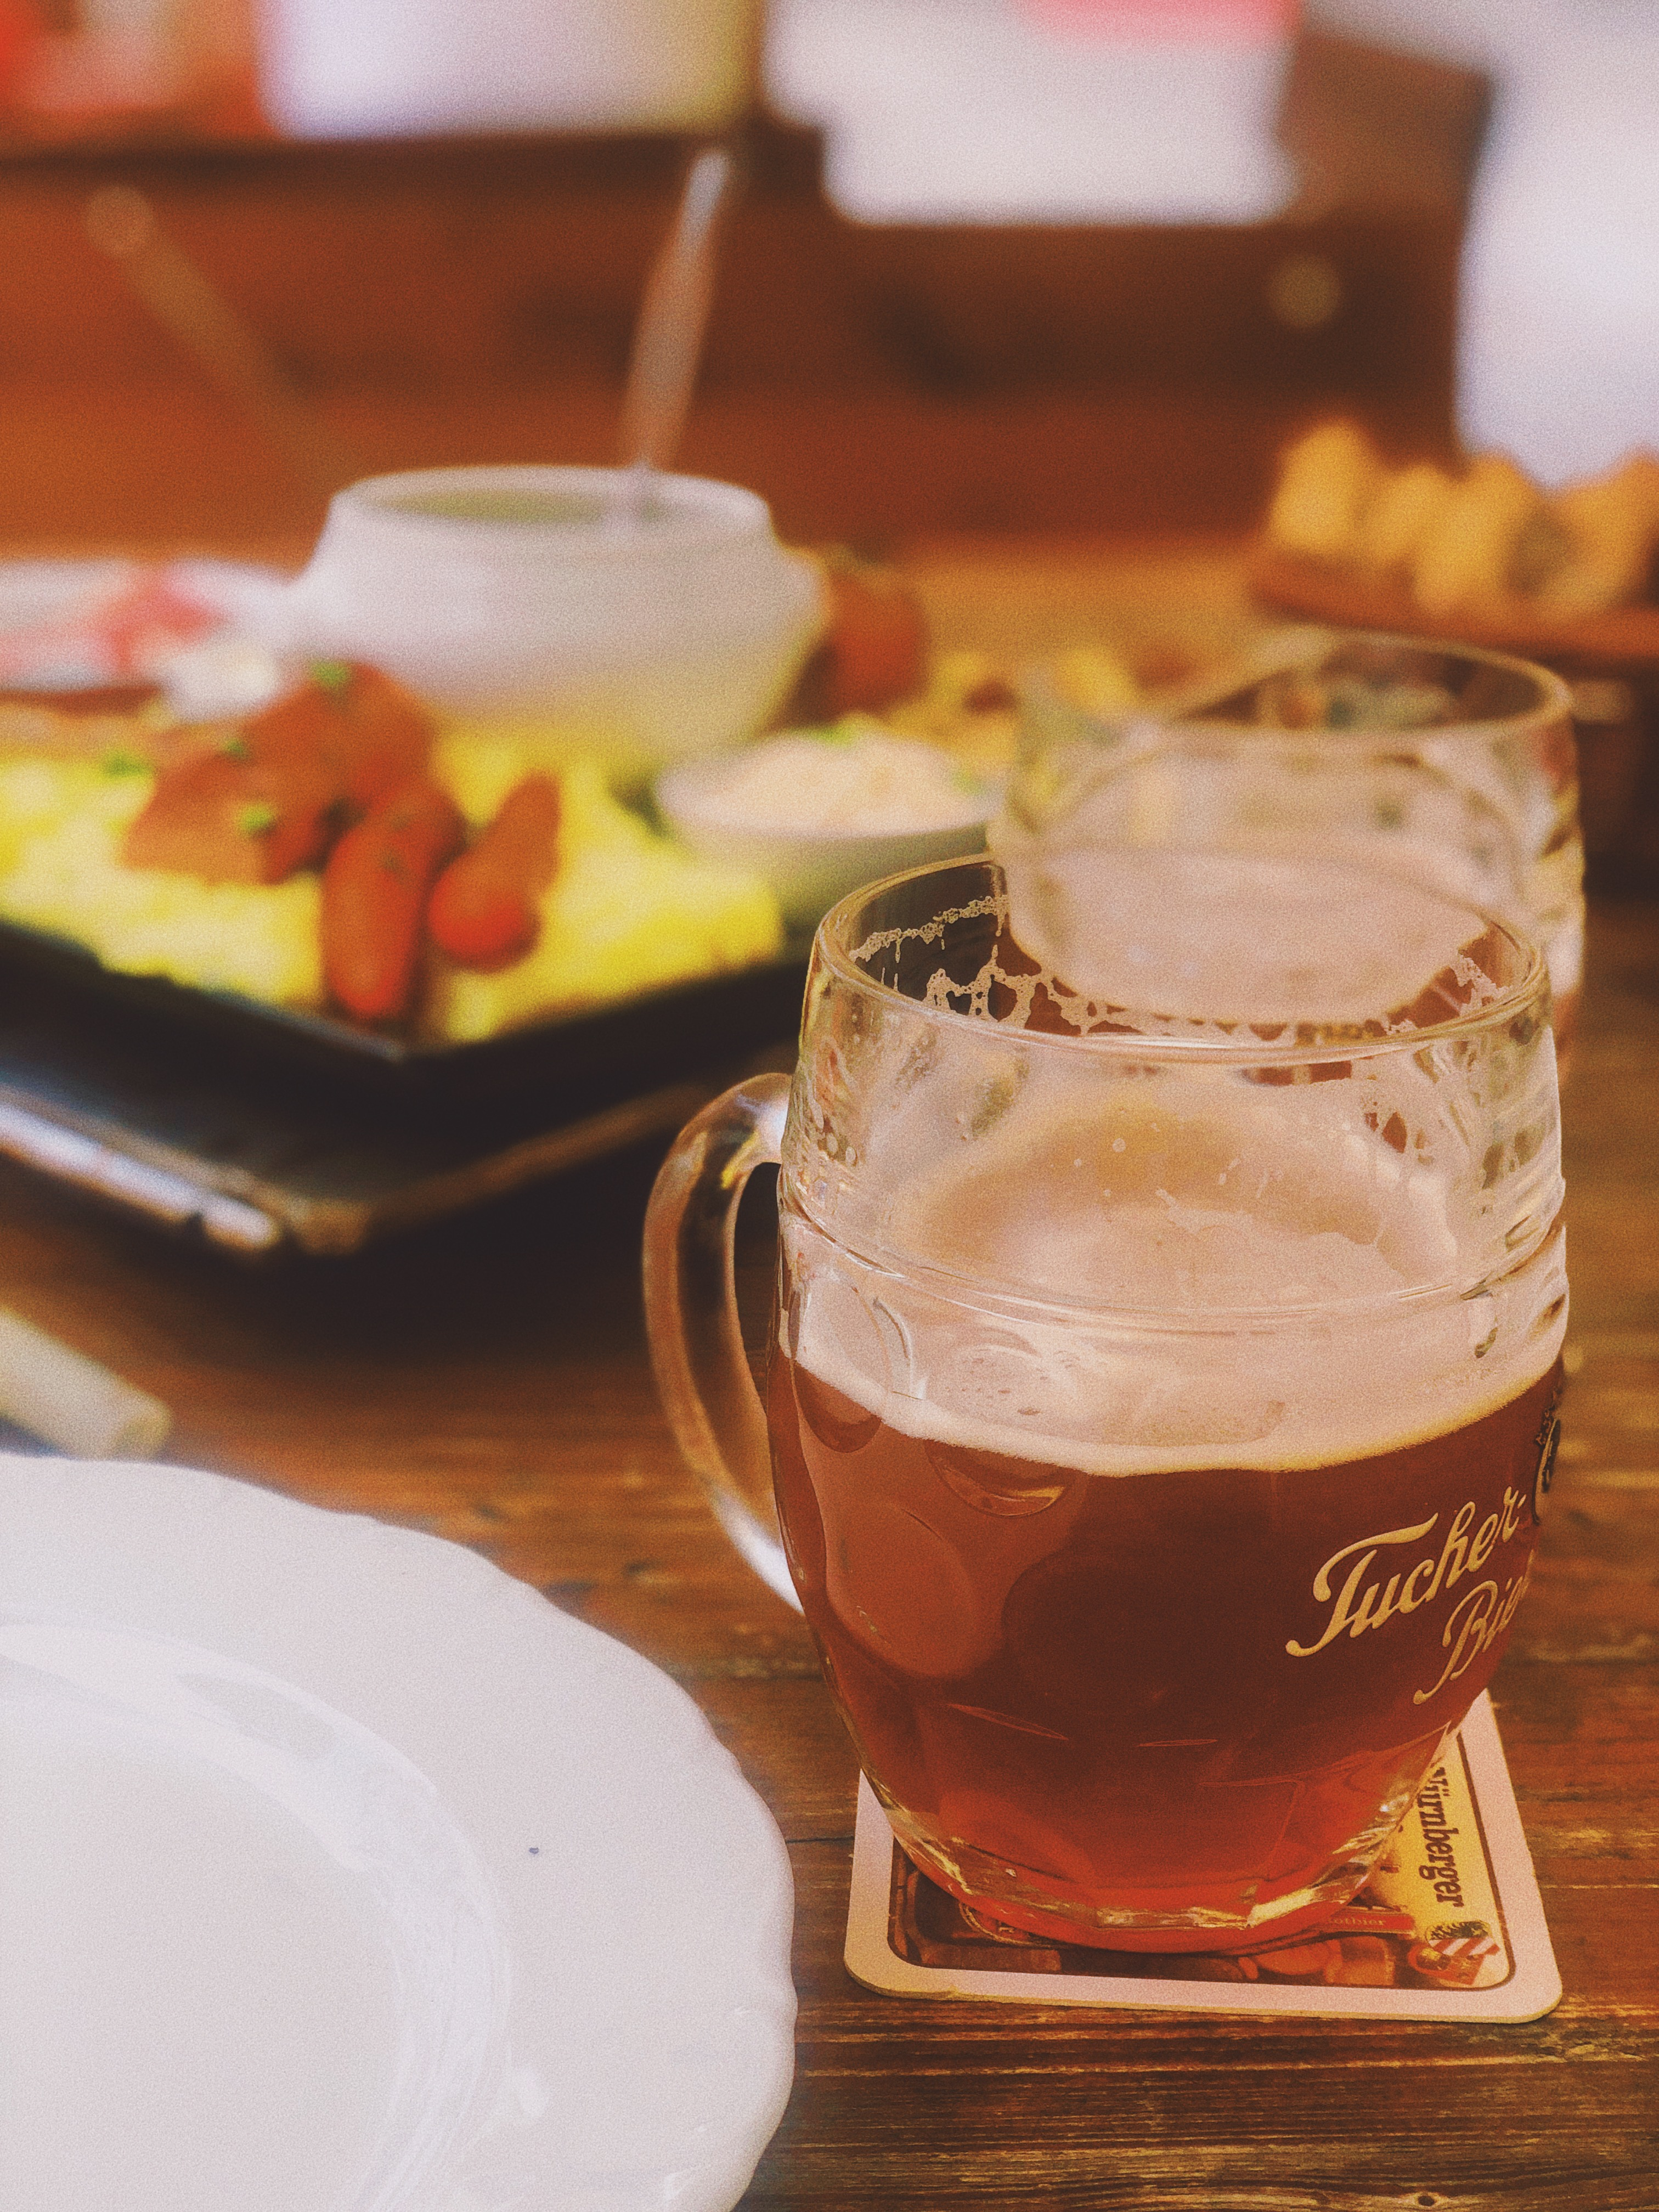 Meal and glass of beer at Bratwurst Roselein in Nuremberg, Germany